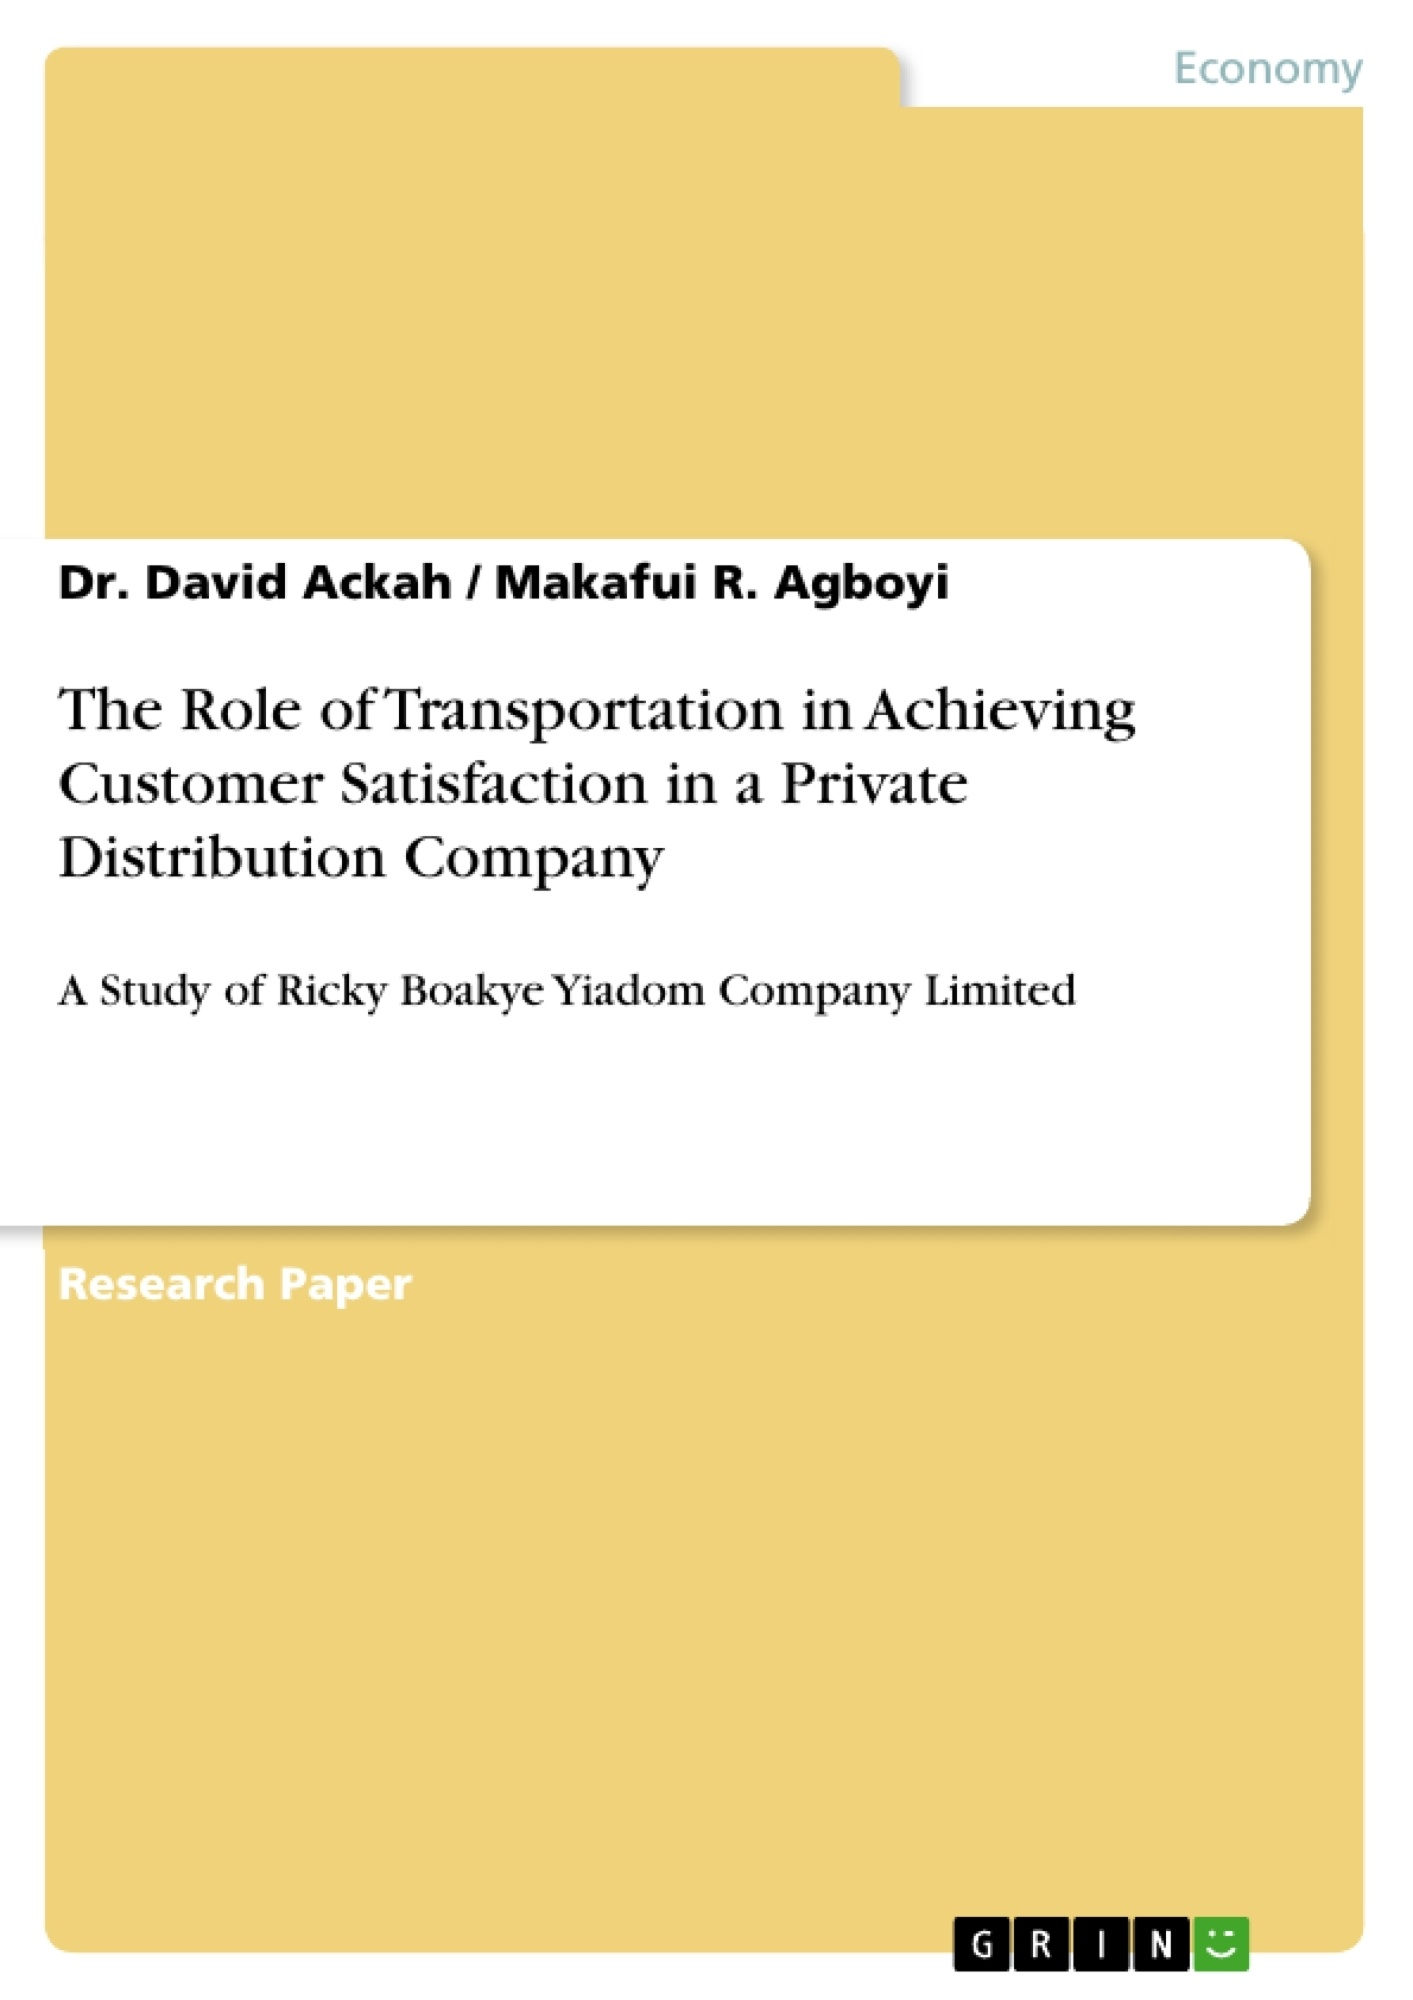 thesis on customer satisfaction in telecom Critical factors of customer satisfaction in ethiopian service sector telecom, banking and customer satisfaction depends on how it responds after.